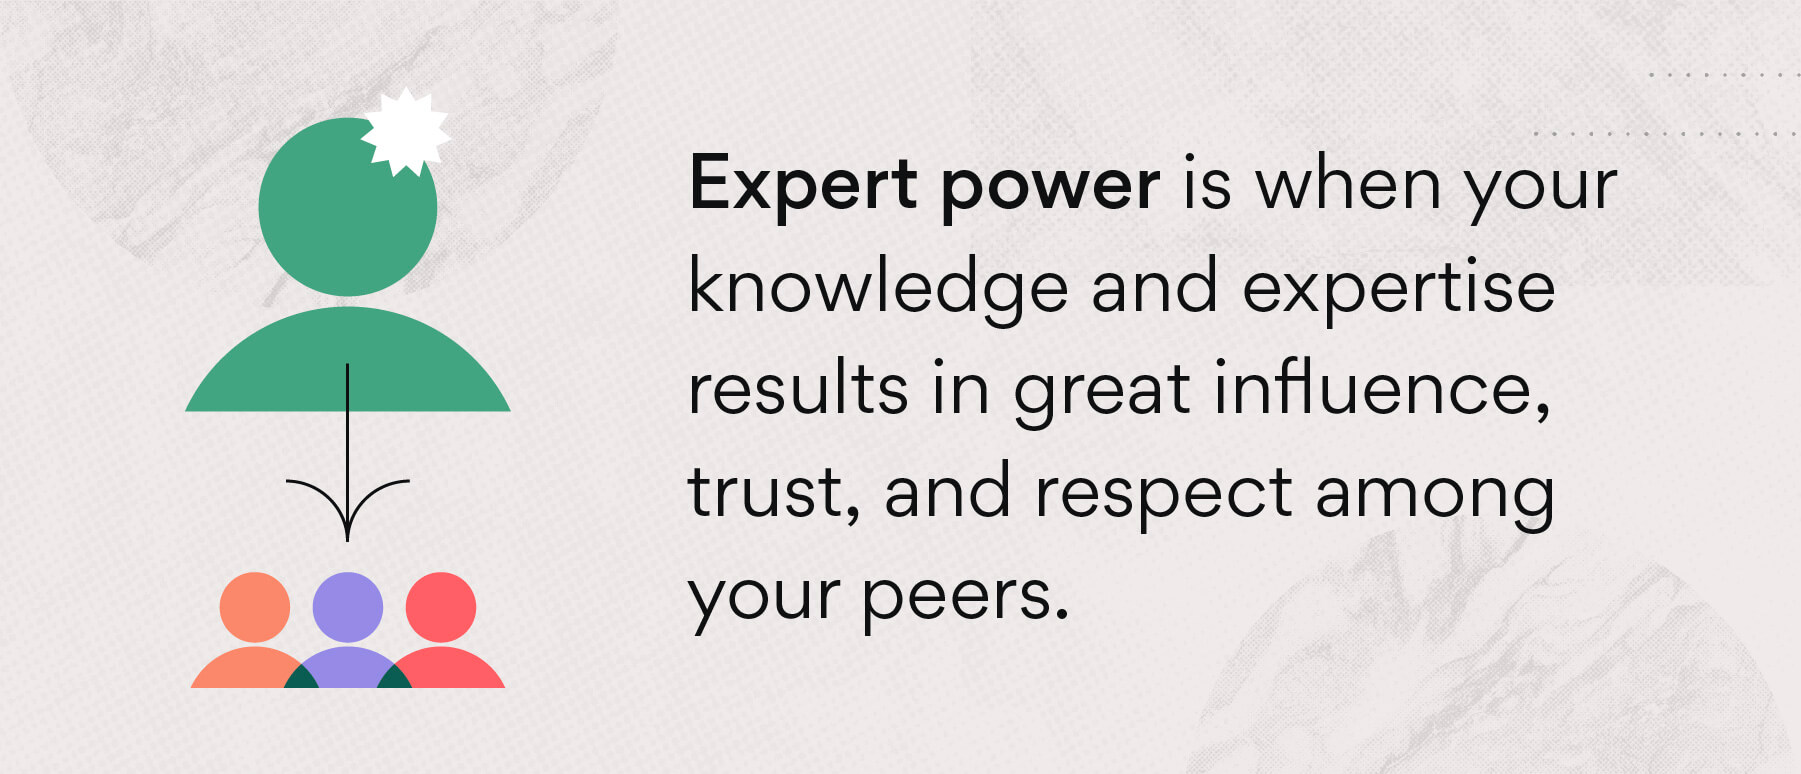 What is expert power?